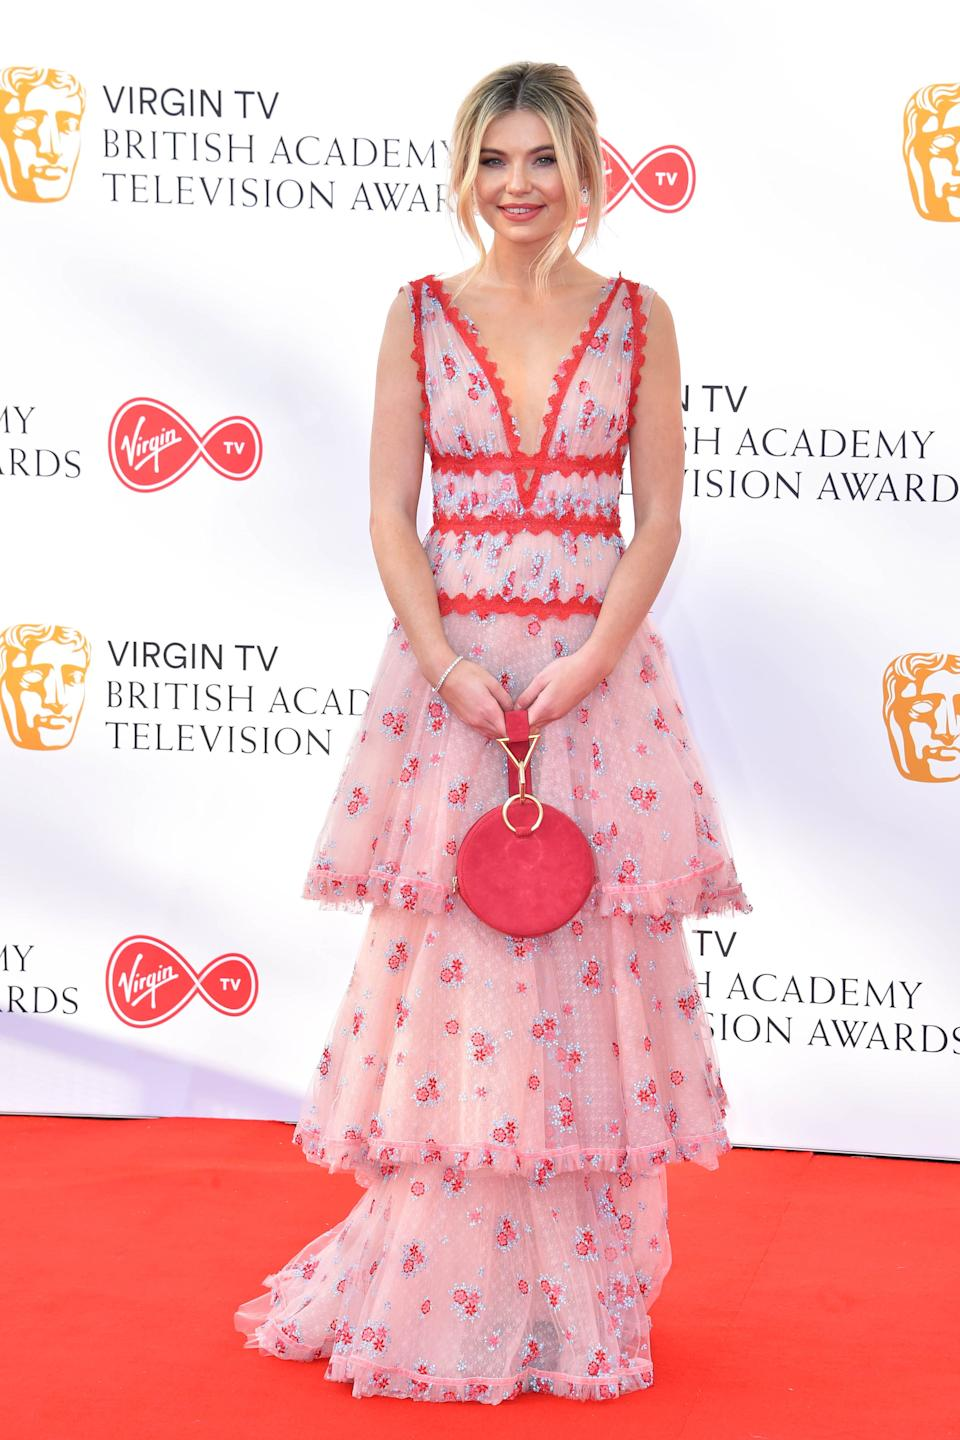 Georgia 'Toff' Toffolo attending the Virgin TV British Academy Television Awards 2018 held at the Royal Festival Hall, Southbank Centre, London.